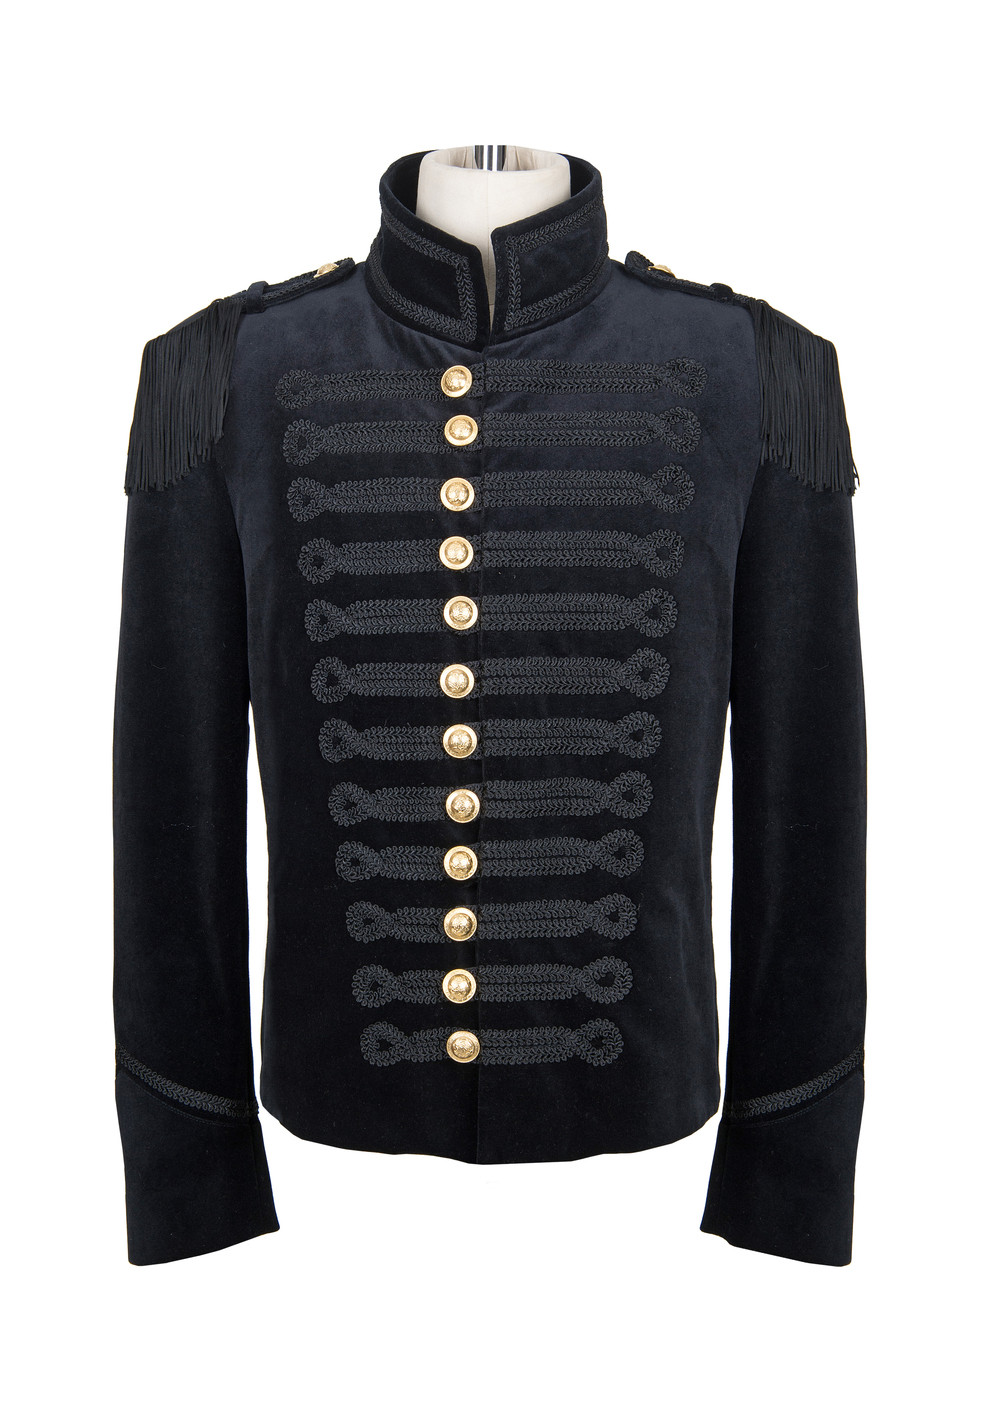 Black velvet mans jacket gold buttons.jpg